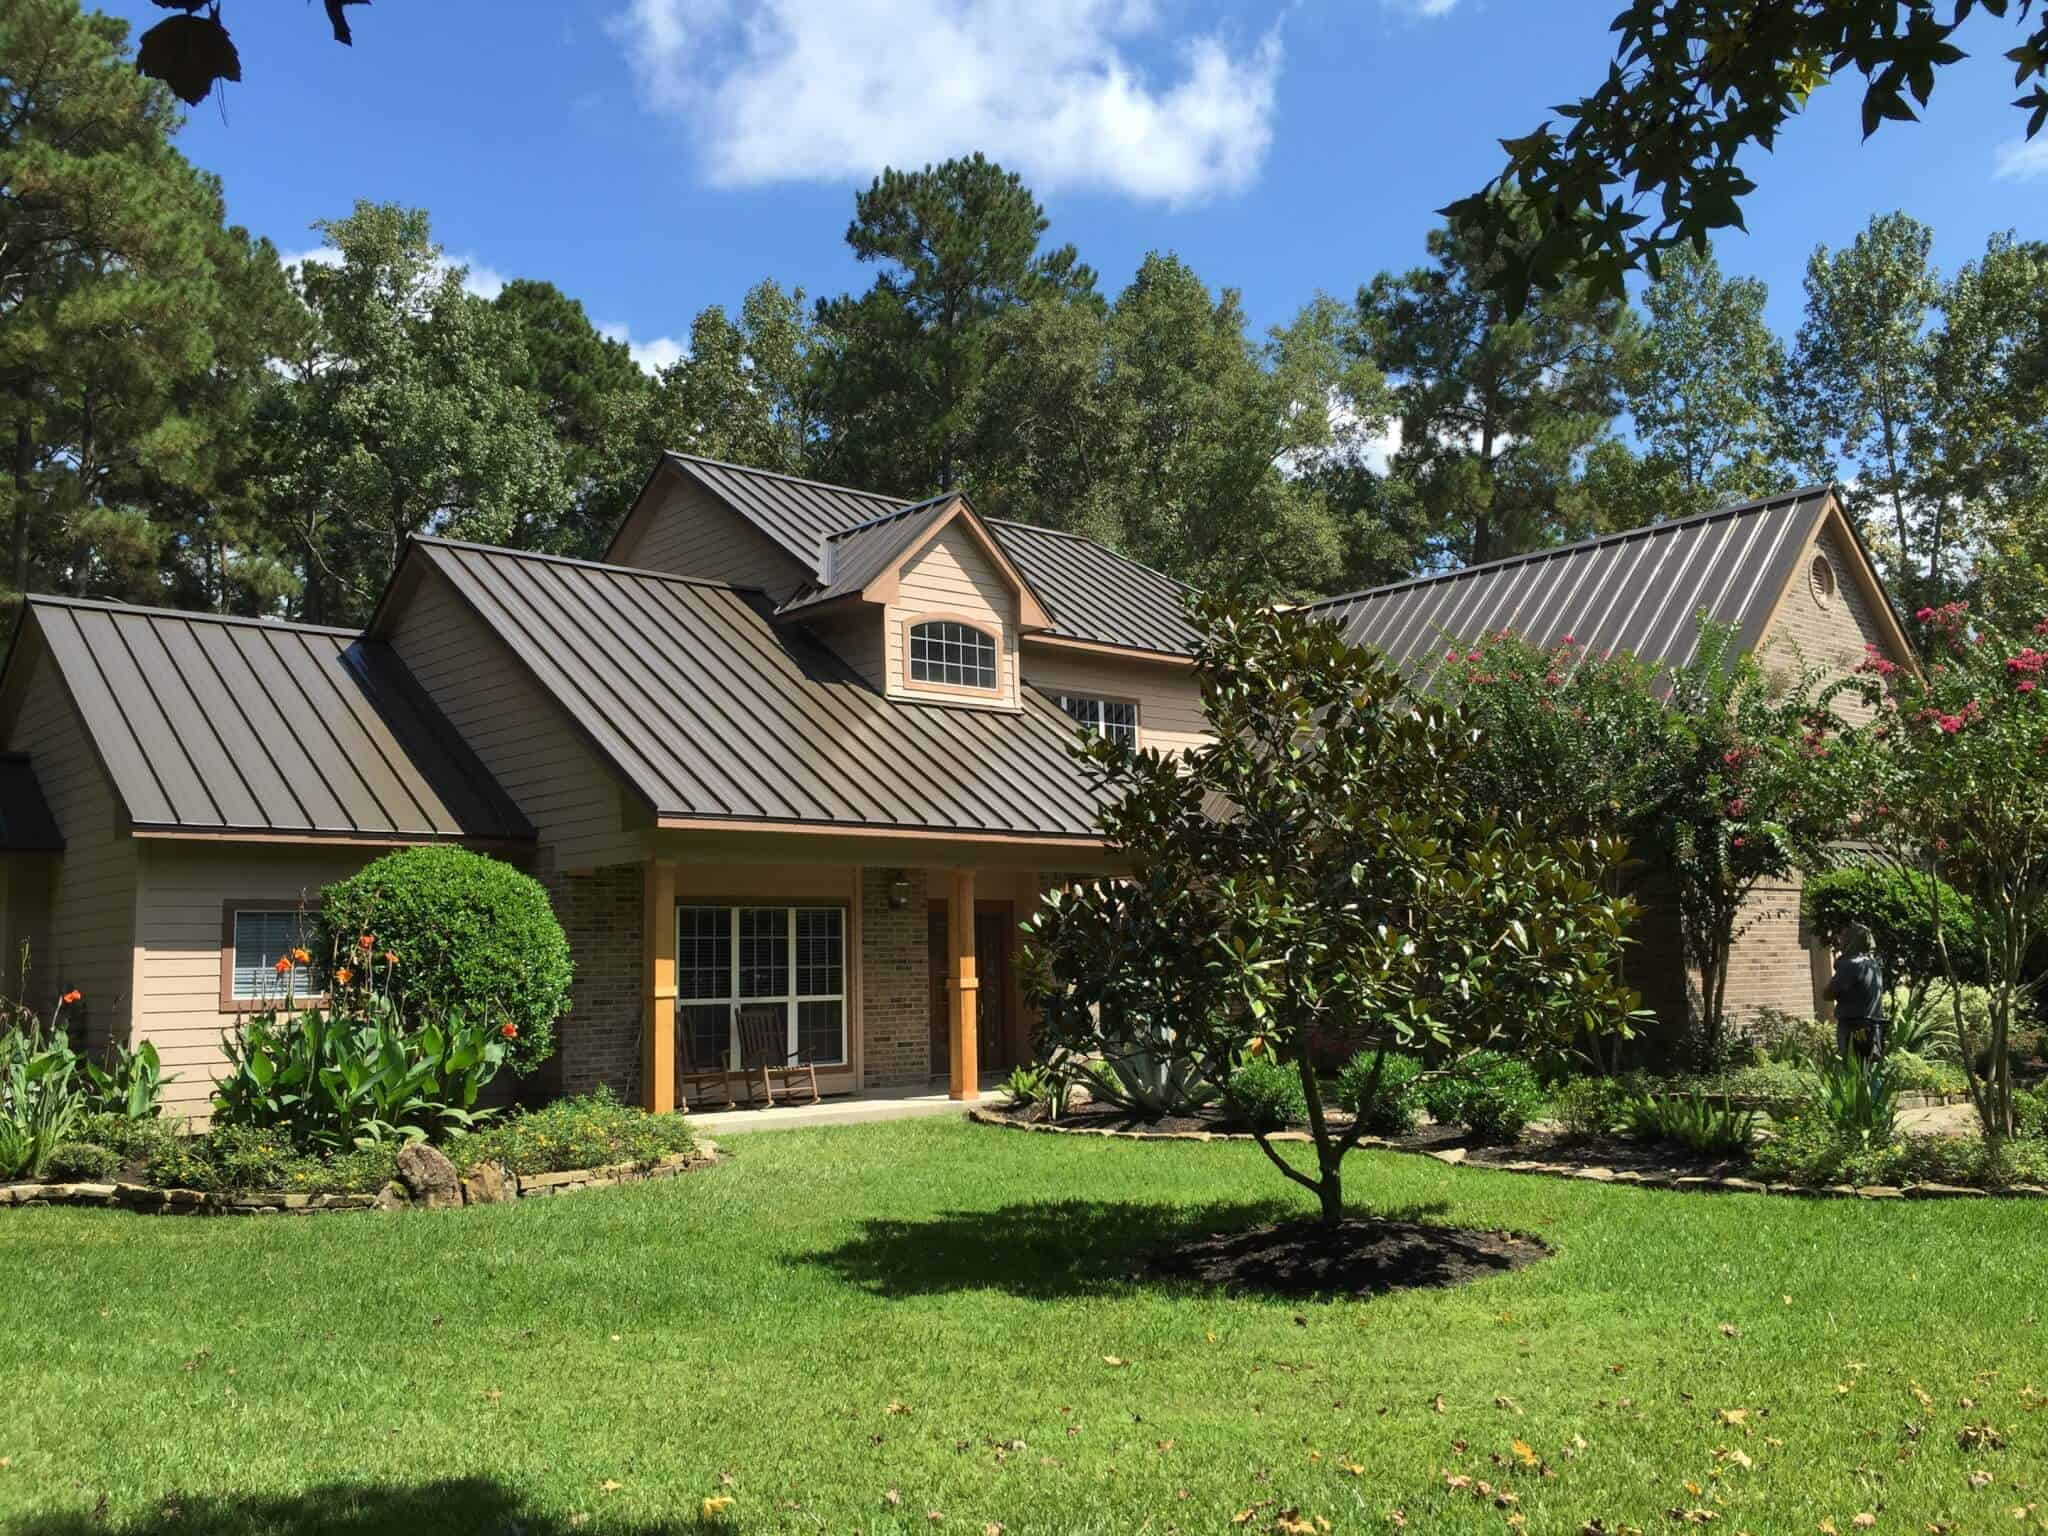 Medallion-Lok Standing Seam Metal Roof - Medium Bronze